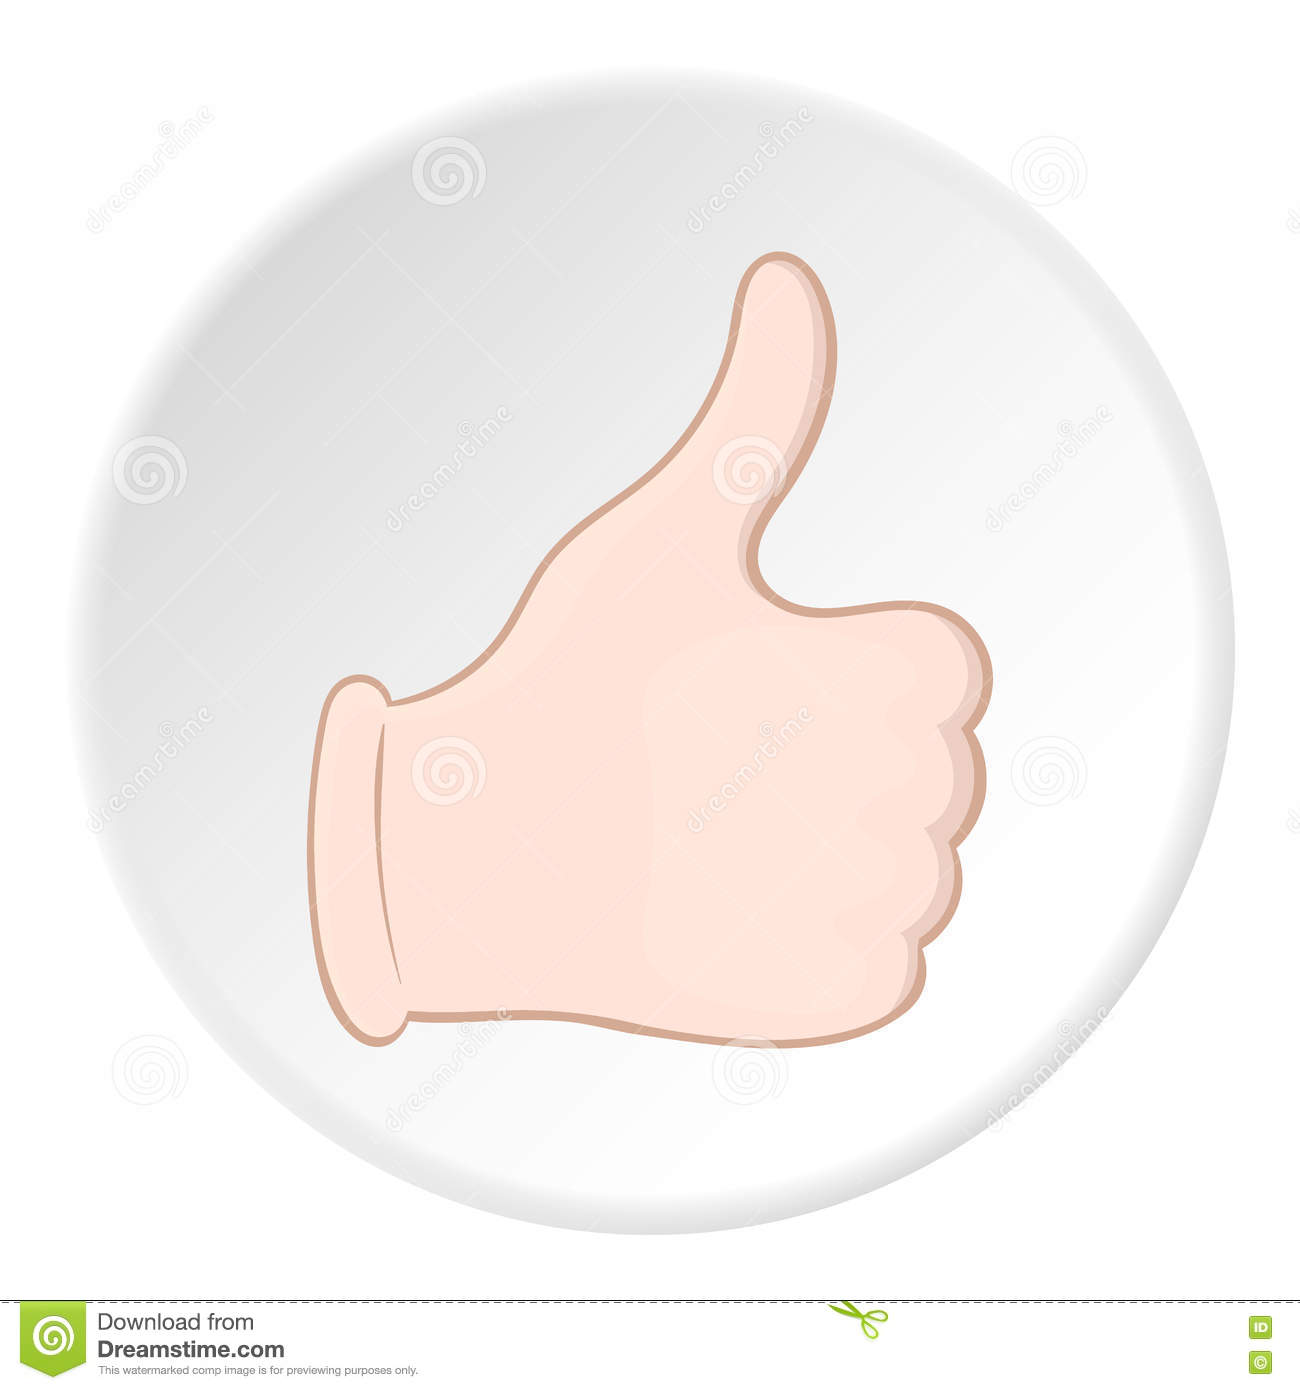 Hand with thumb up icon, cartoon style